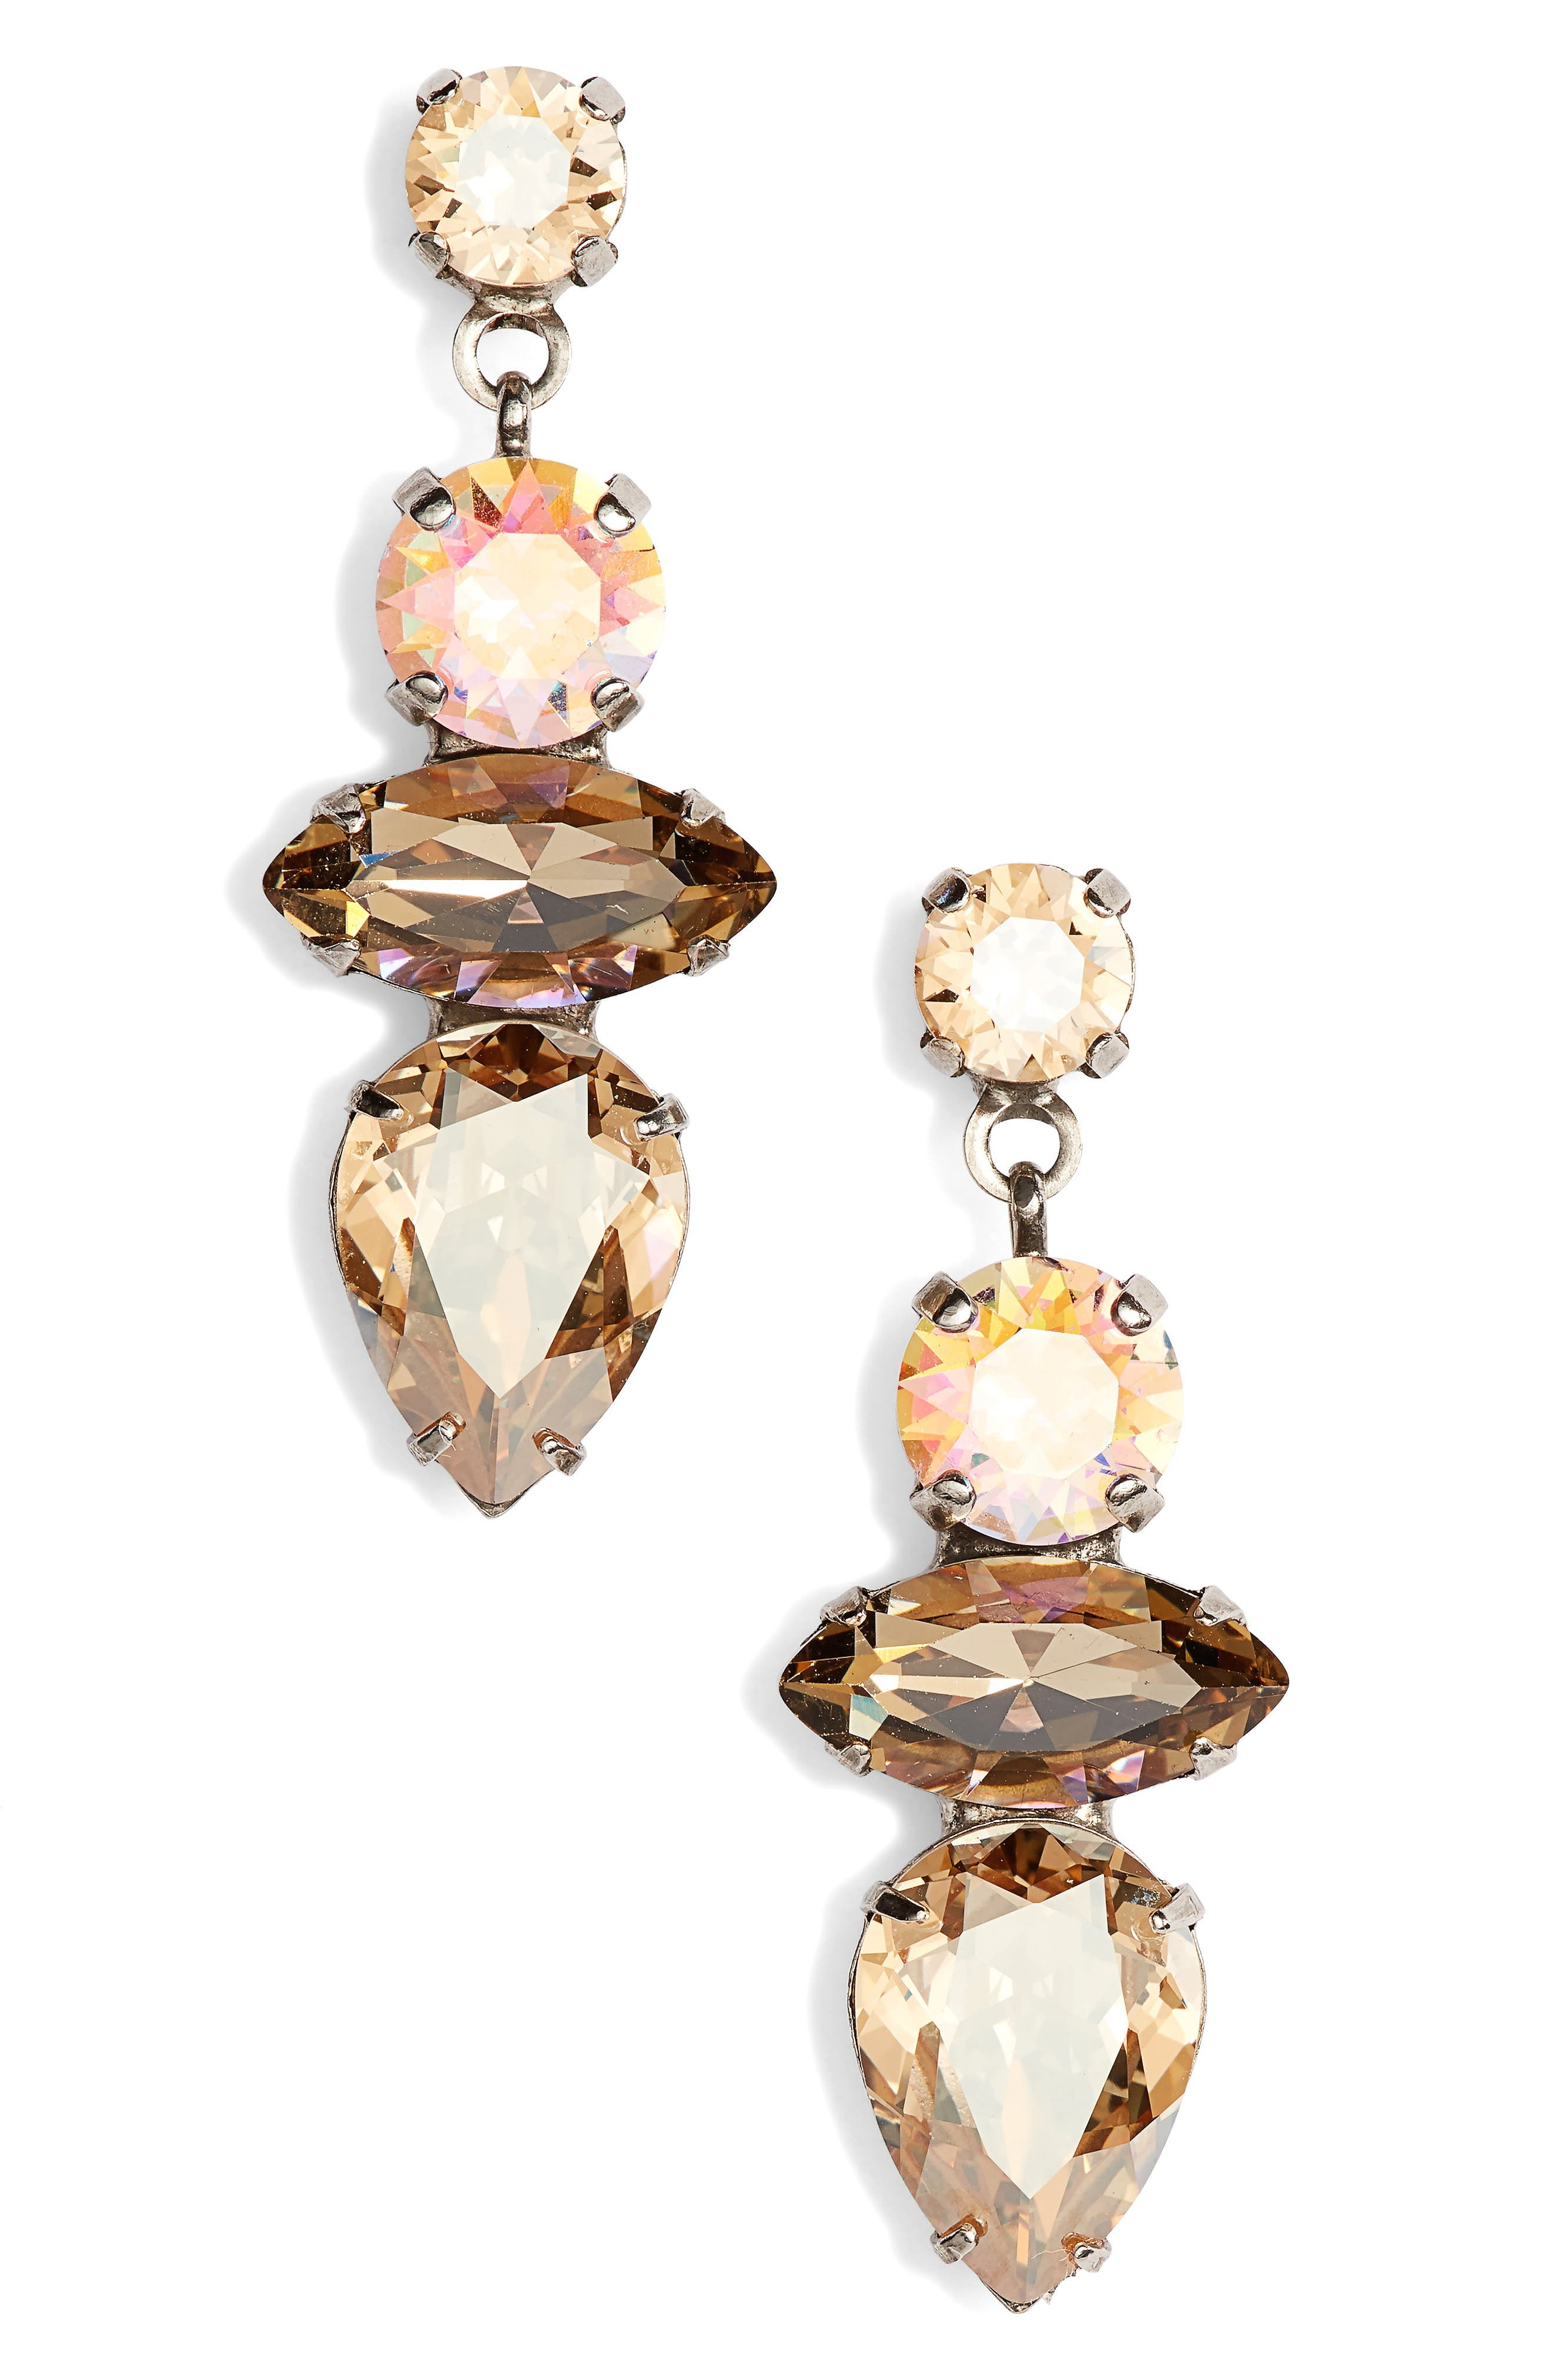 Narcissus Crystal Drop Earrings,                             Main thumbnail 1, color,                             Tan